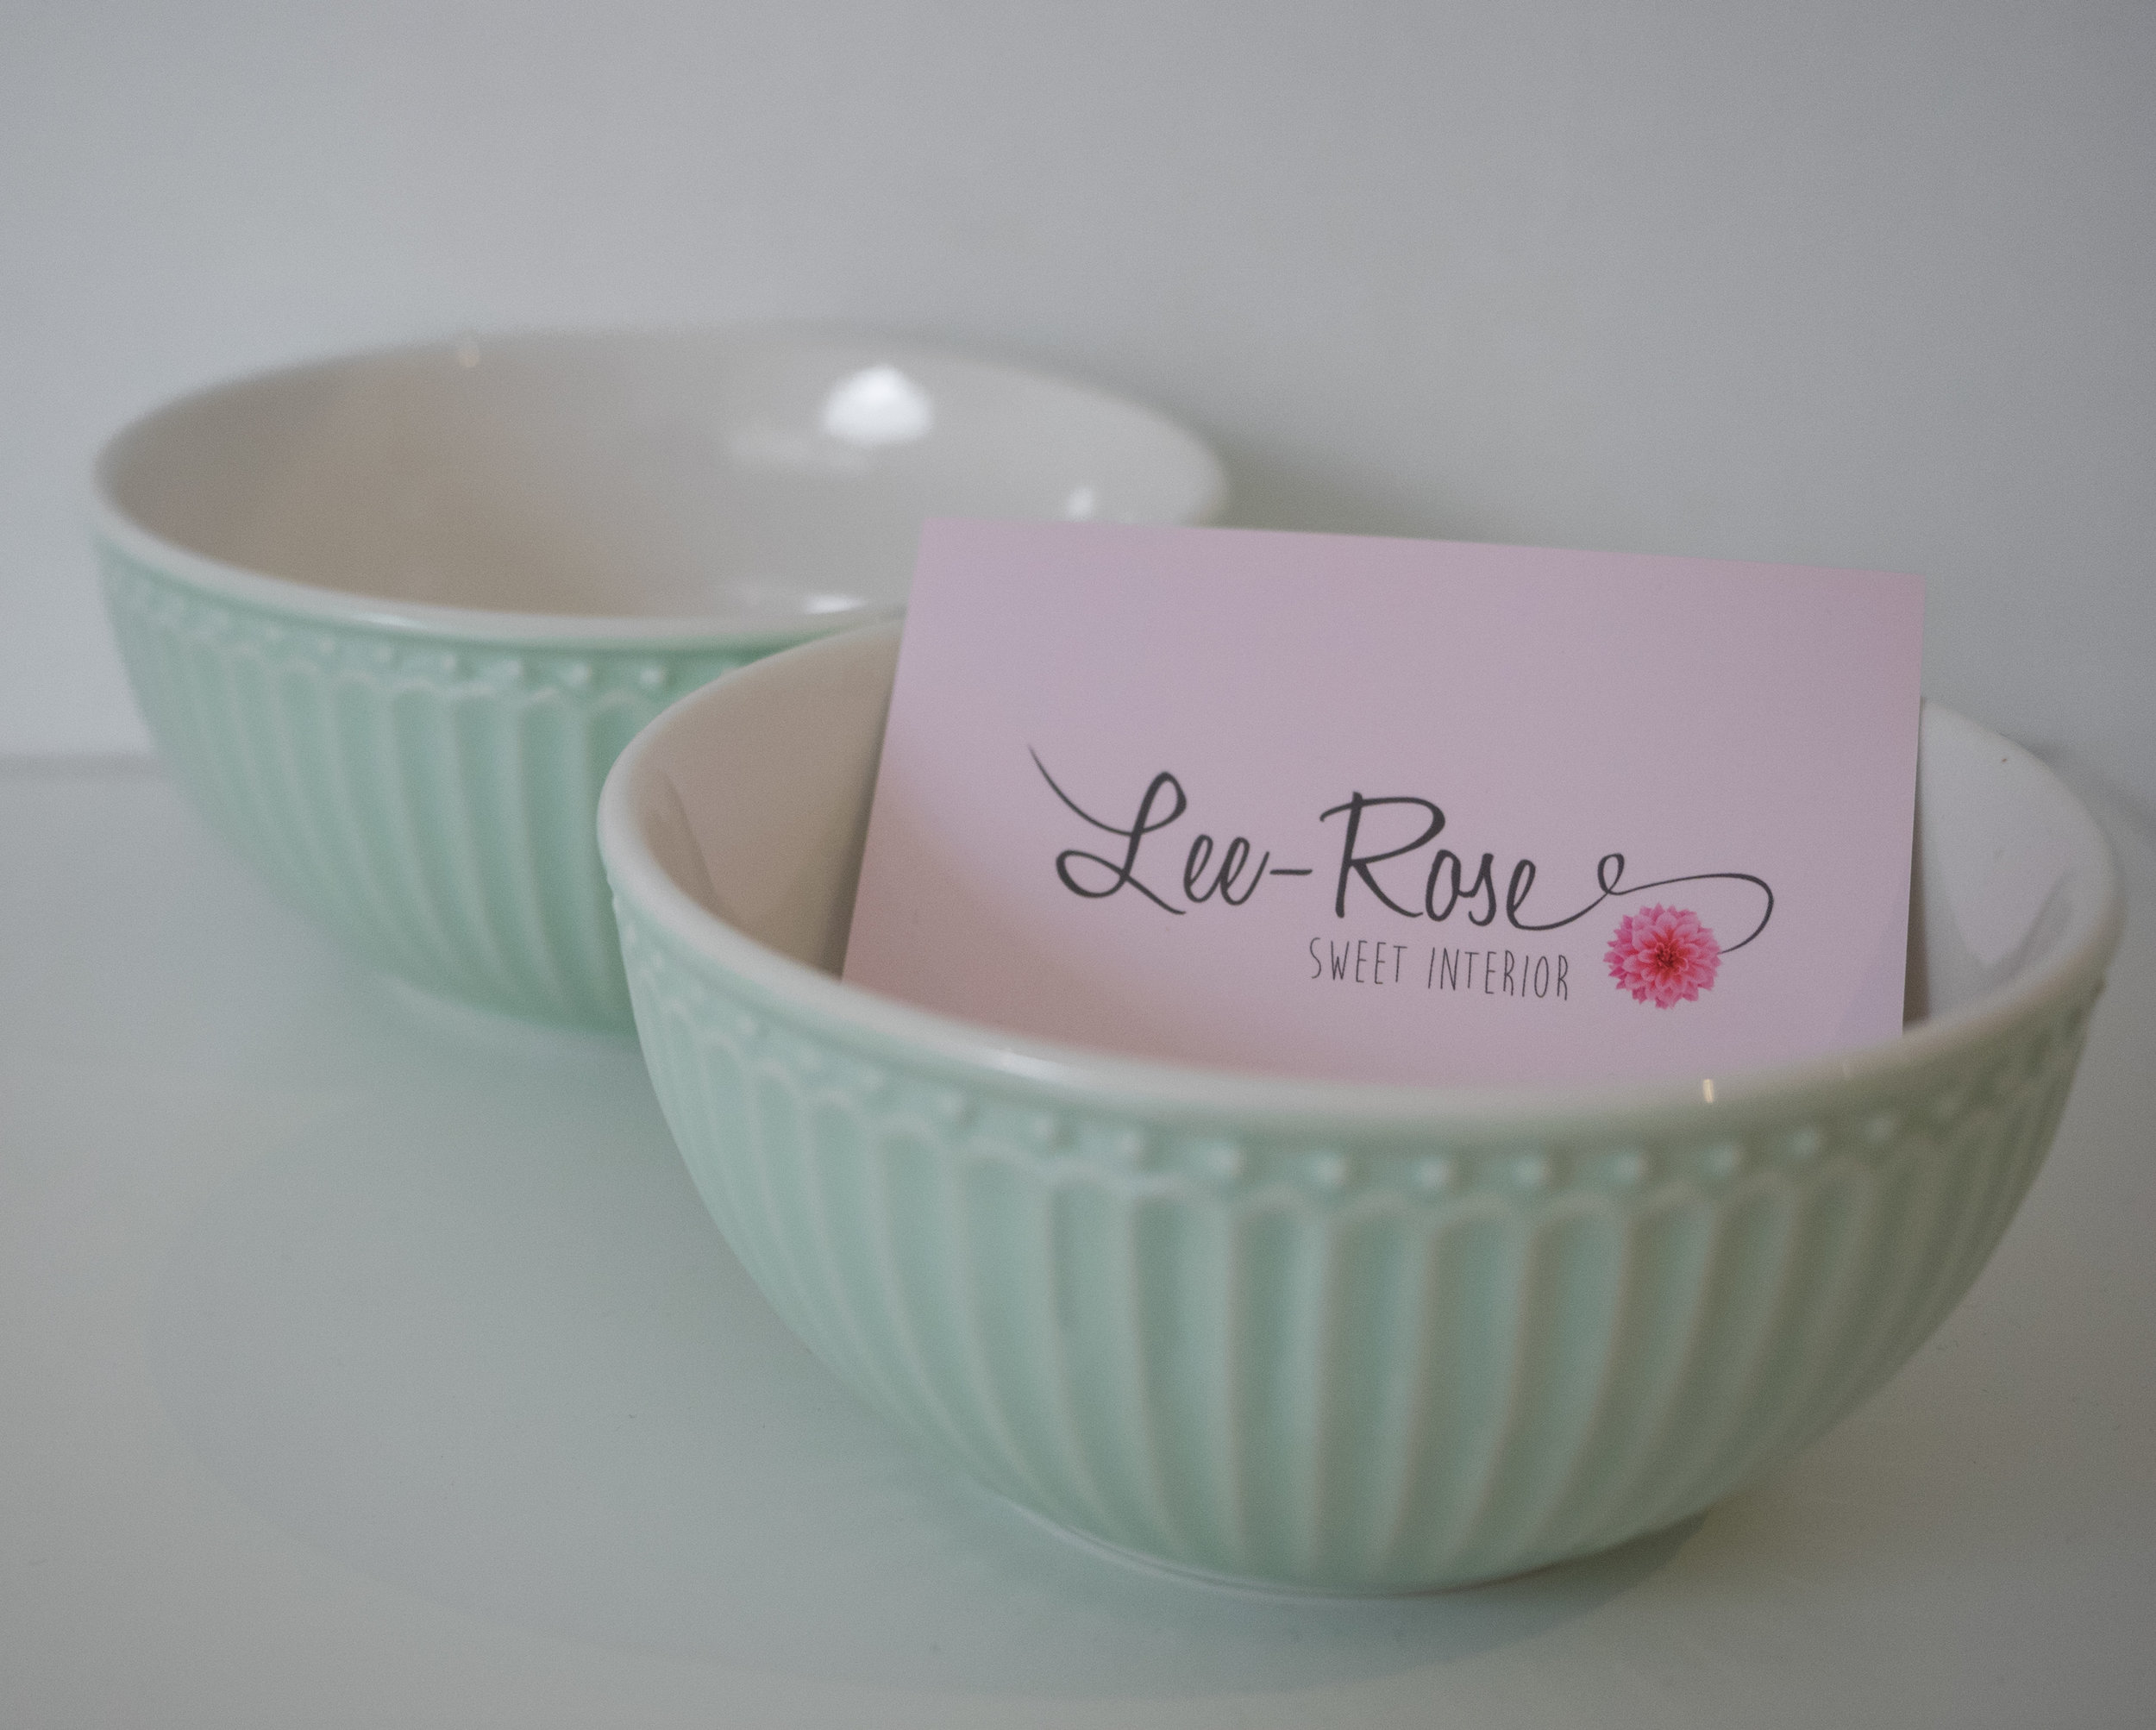 The dreamy pastel colours from Lee-Rose.